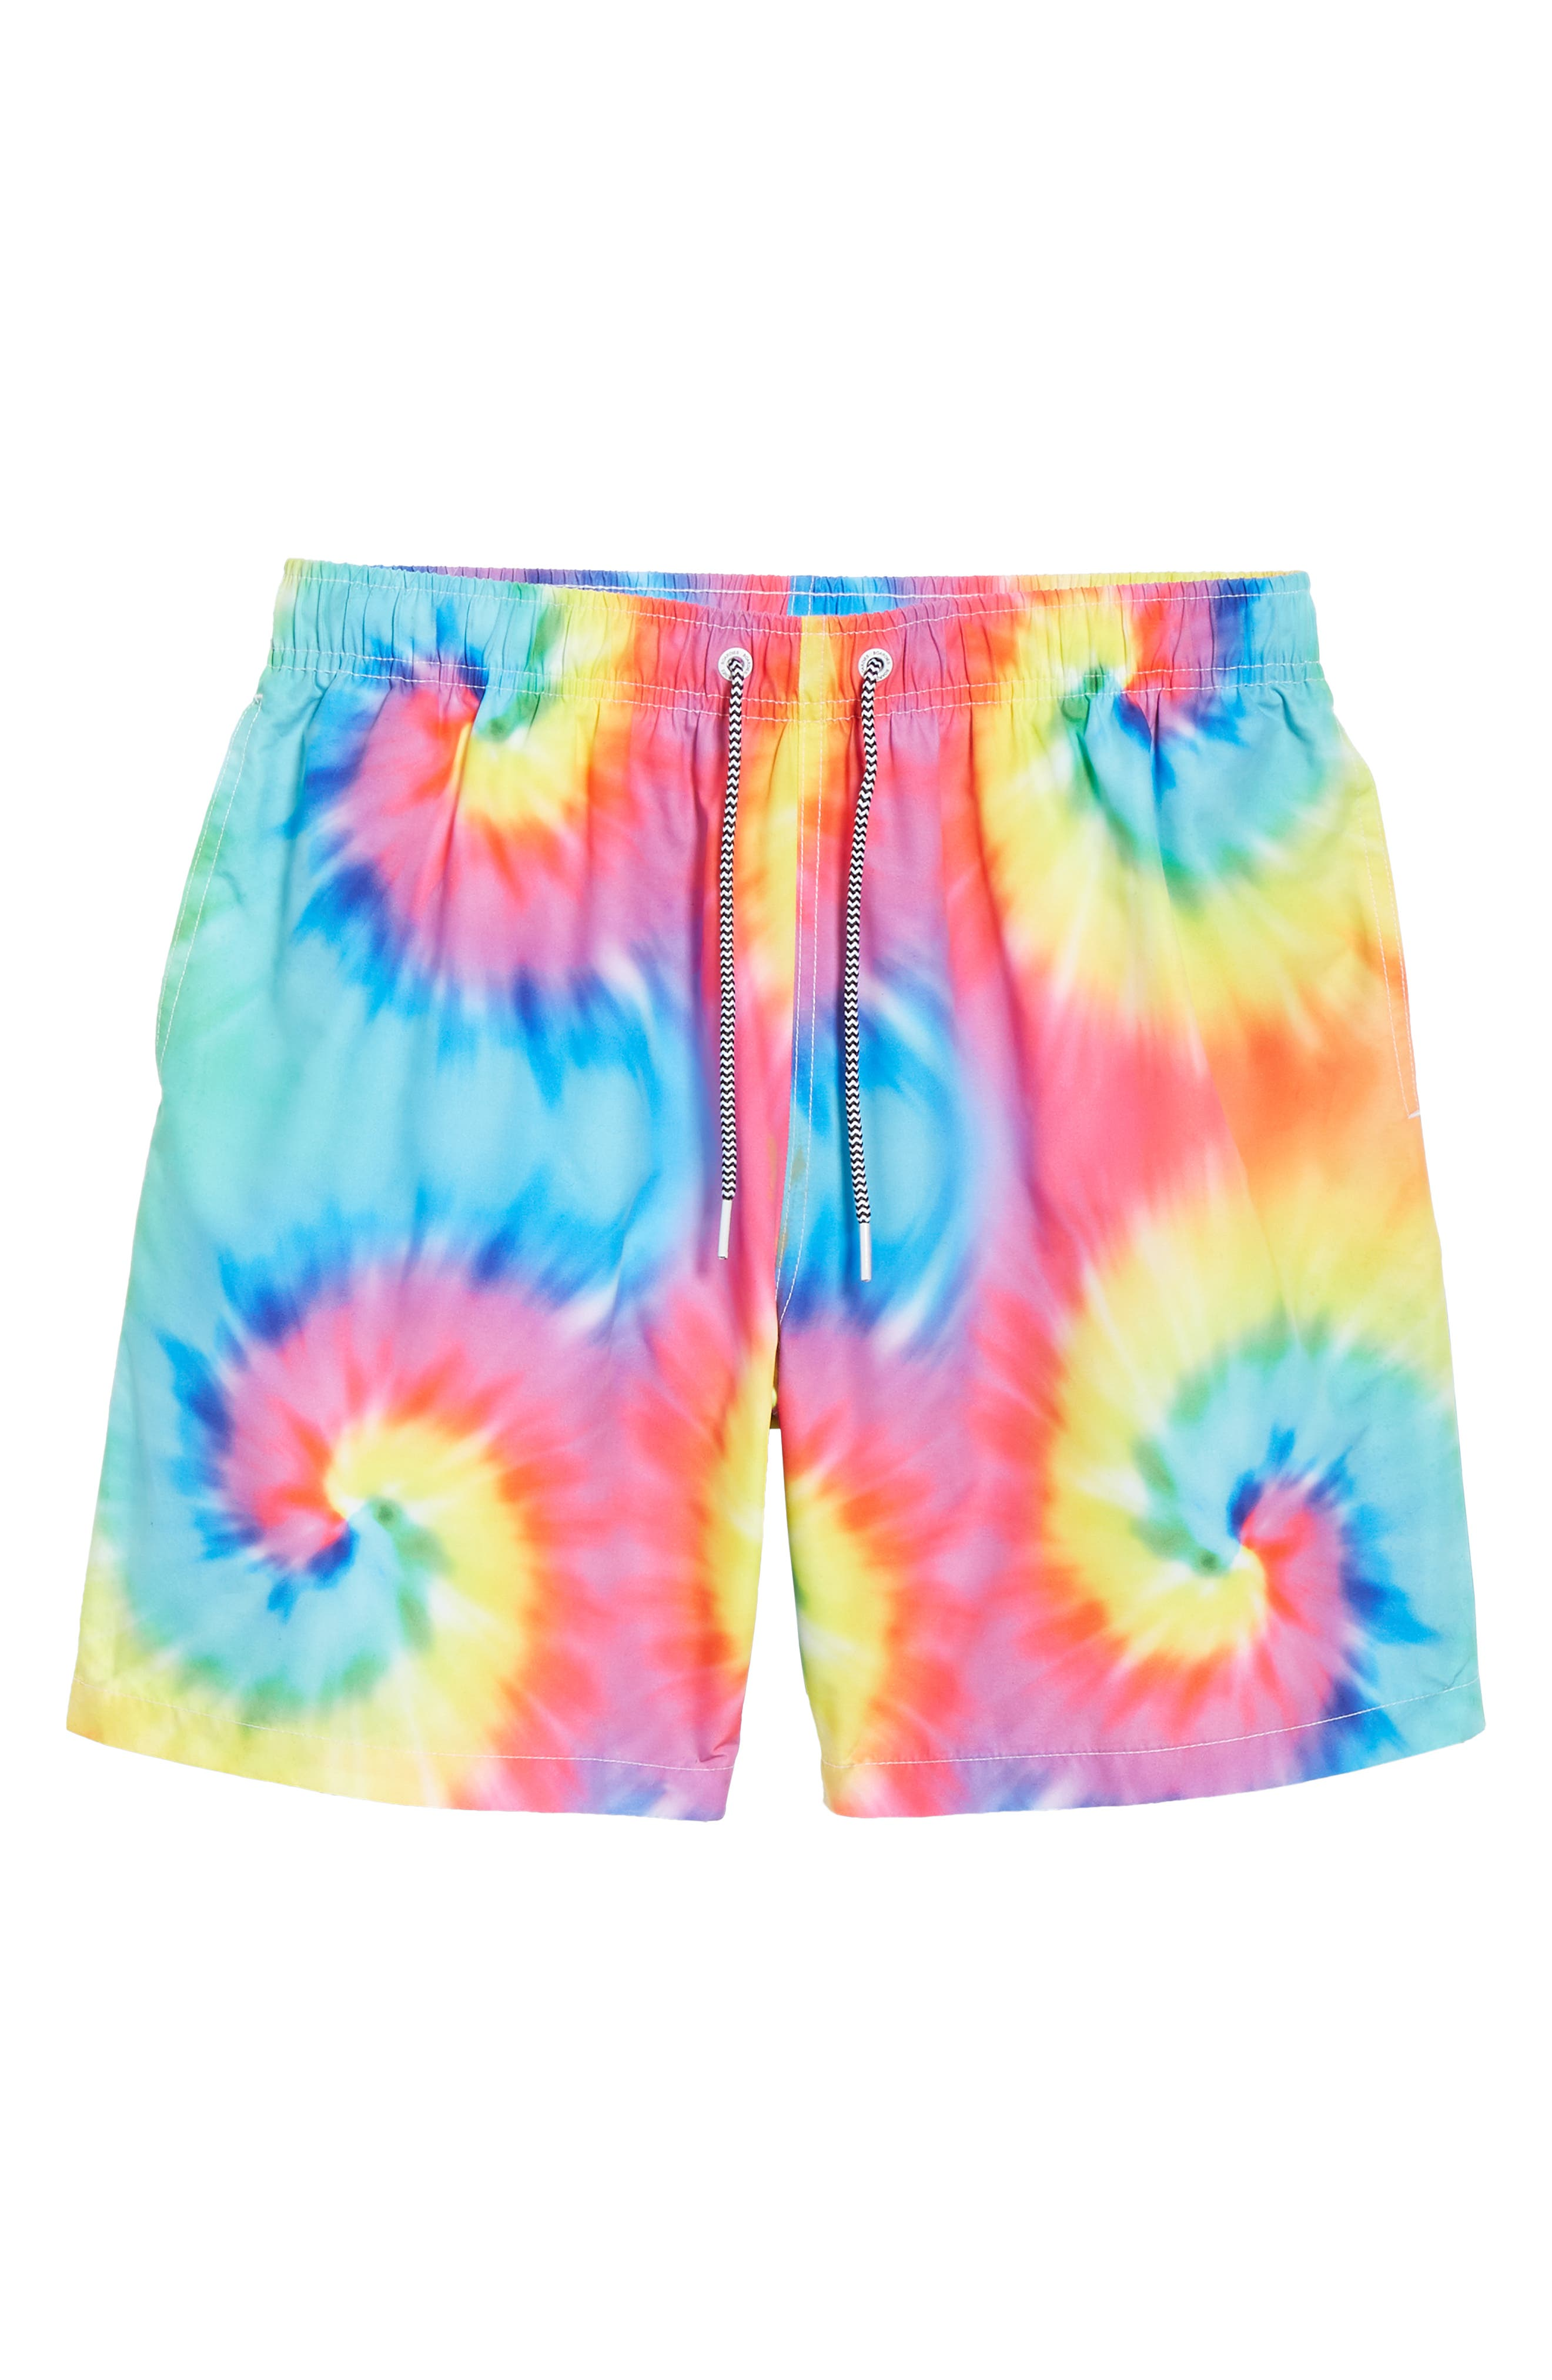 Tie Dye Swim Trunks,                             Alternate thumbnail 6, color,                             400